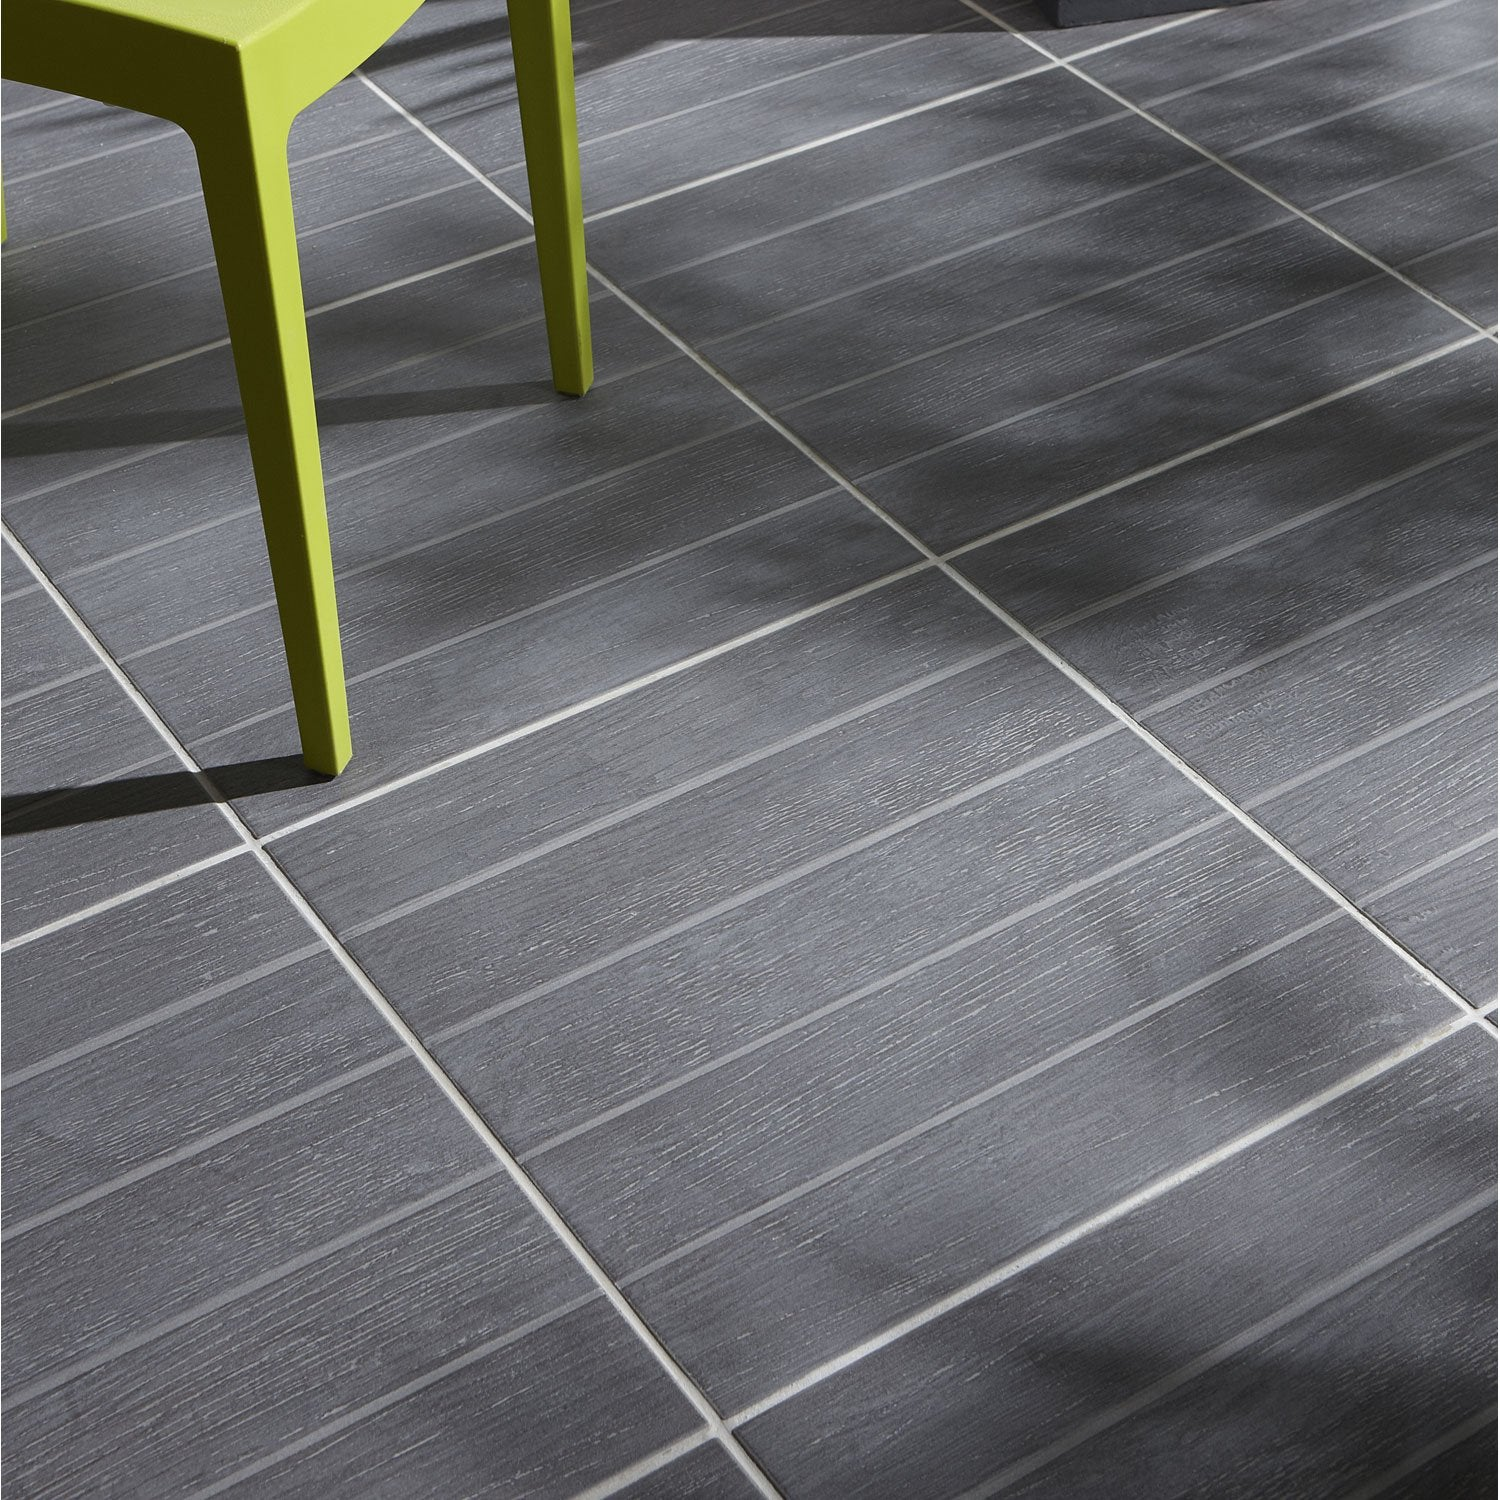 Carrelage sol gris anthracite devi gratuit colombes for Carrelage exterieur gris anthracite